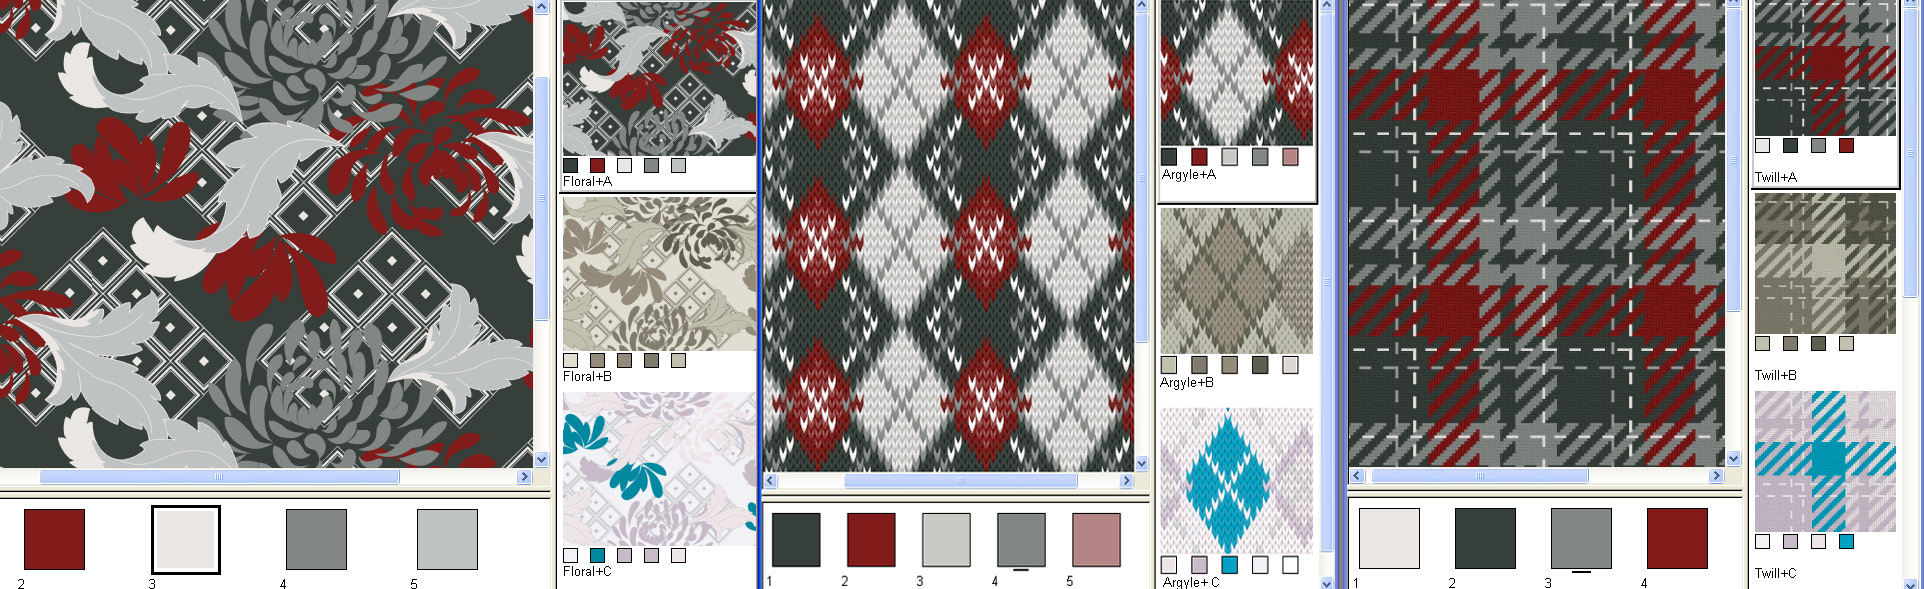 screen shot demonstrating how to view and recolor prints knits and woven designs at the same time